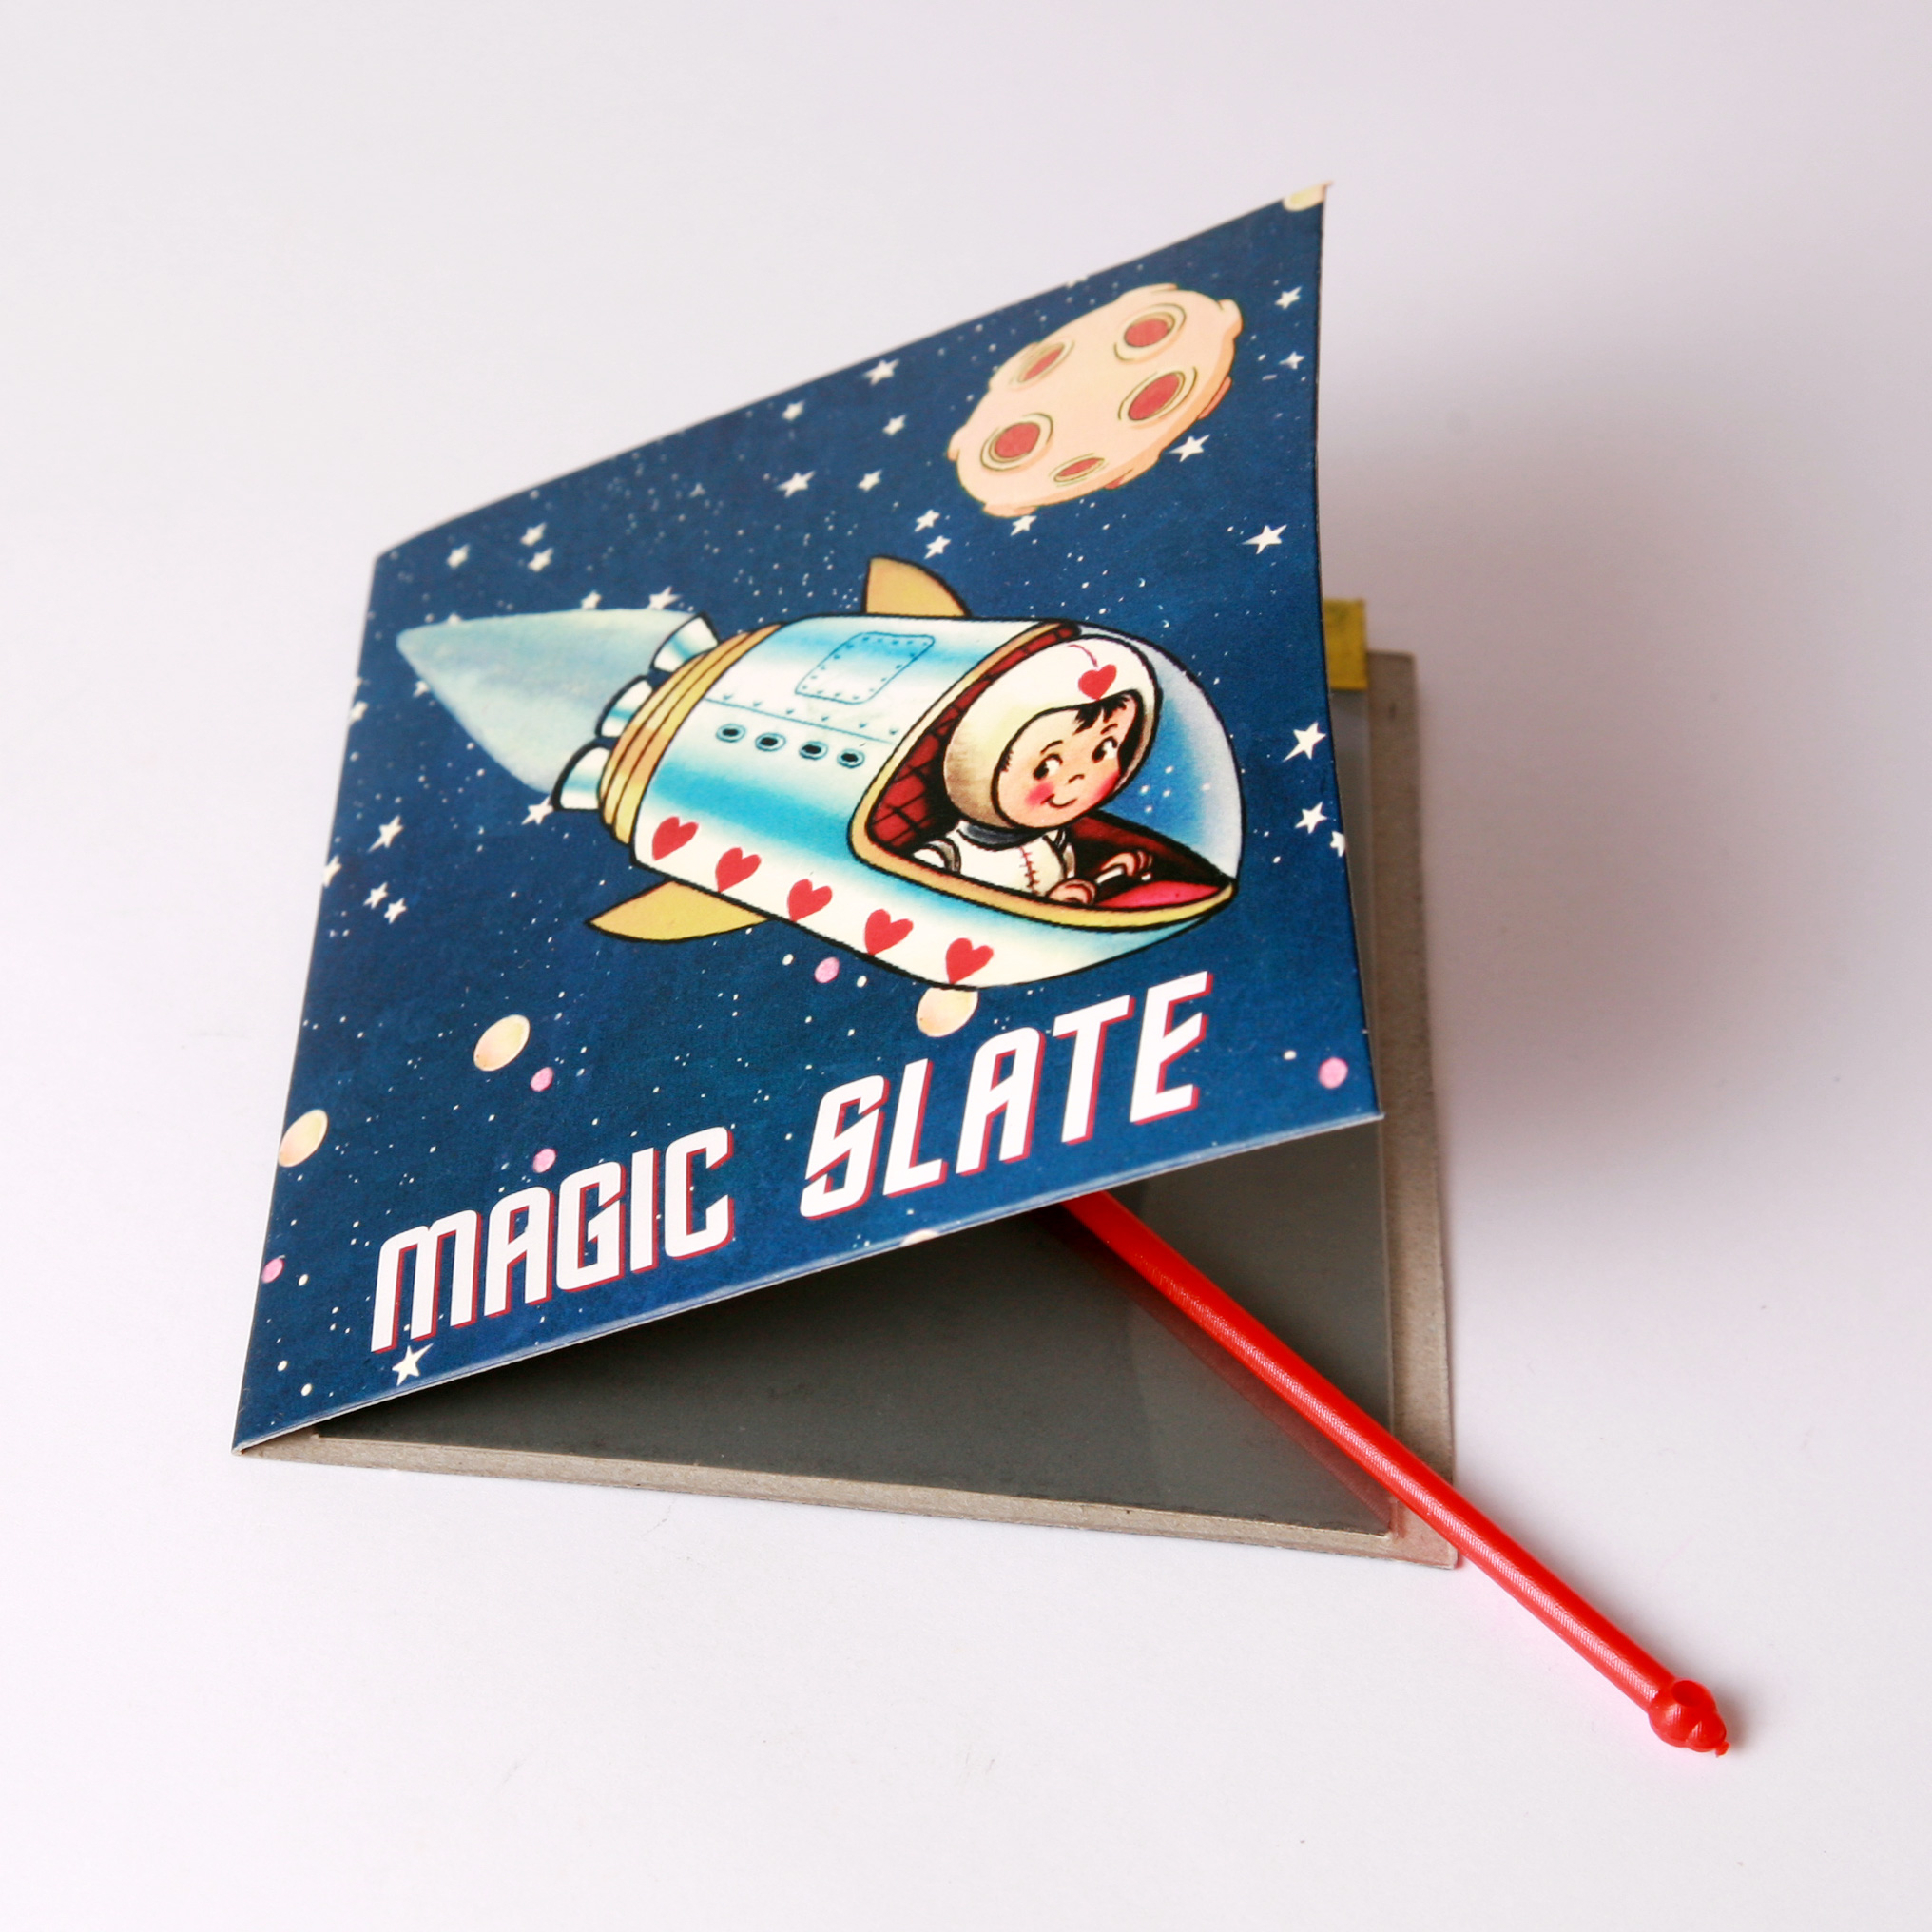 Magic drawing slate - astroboy